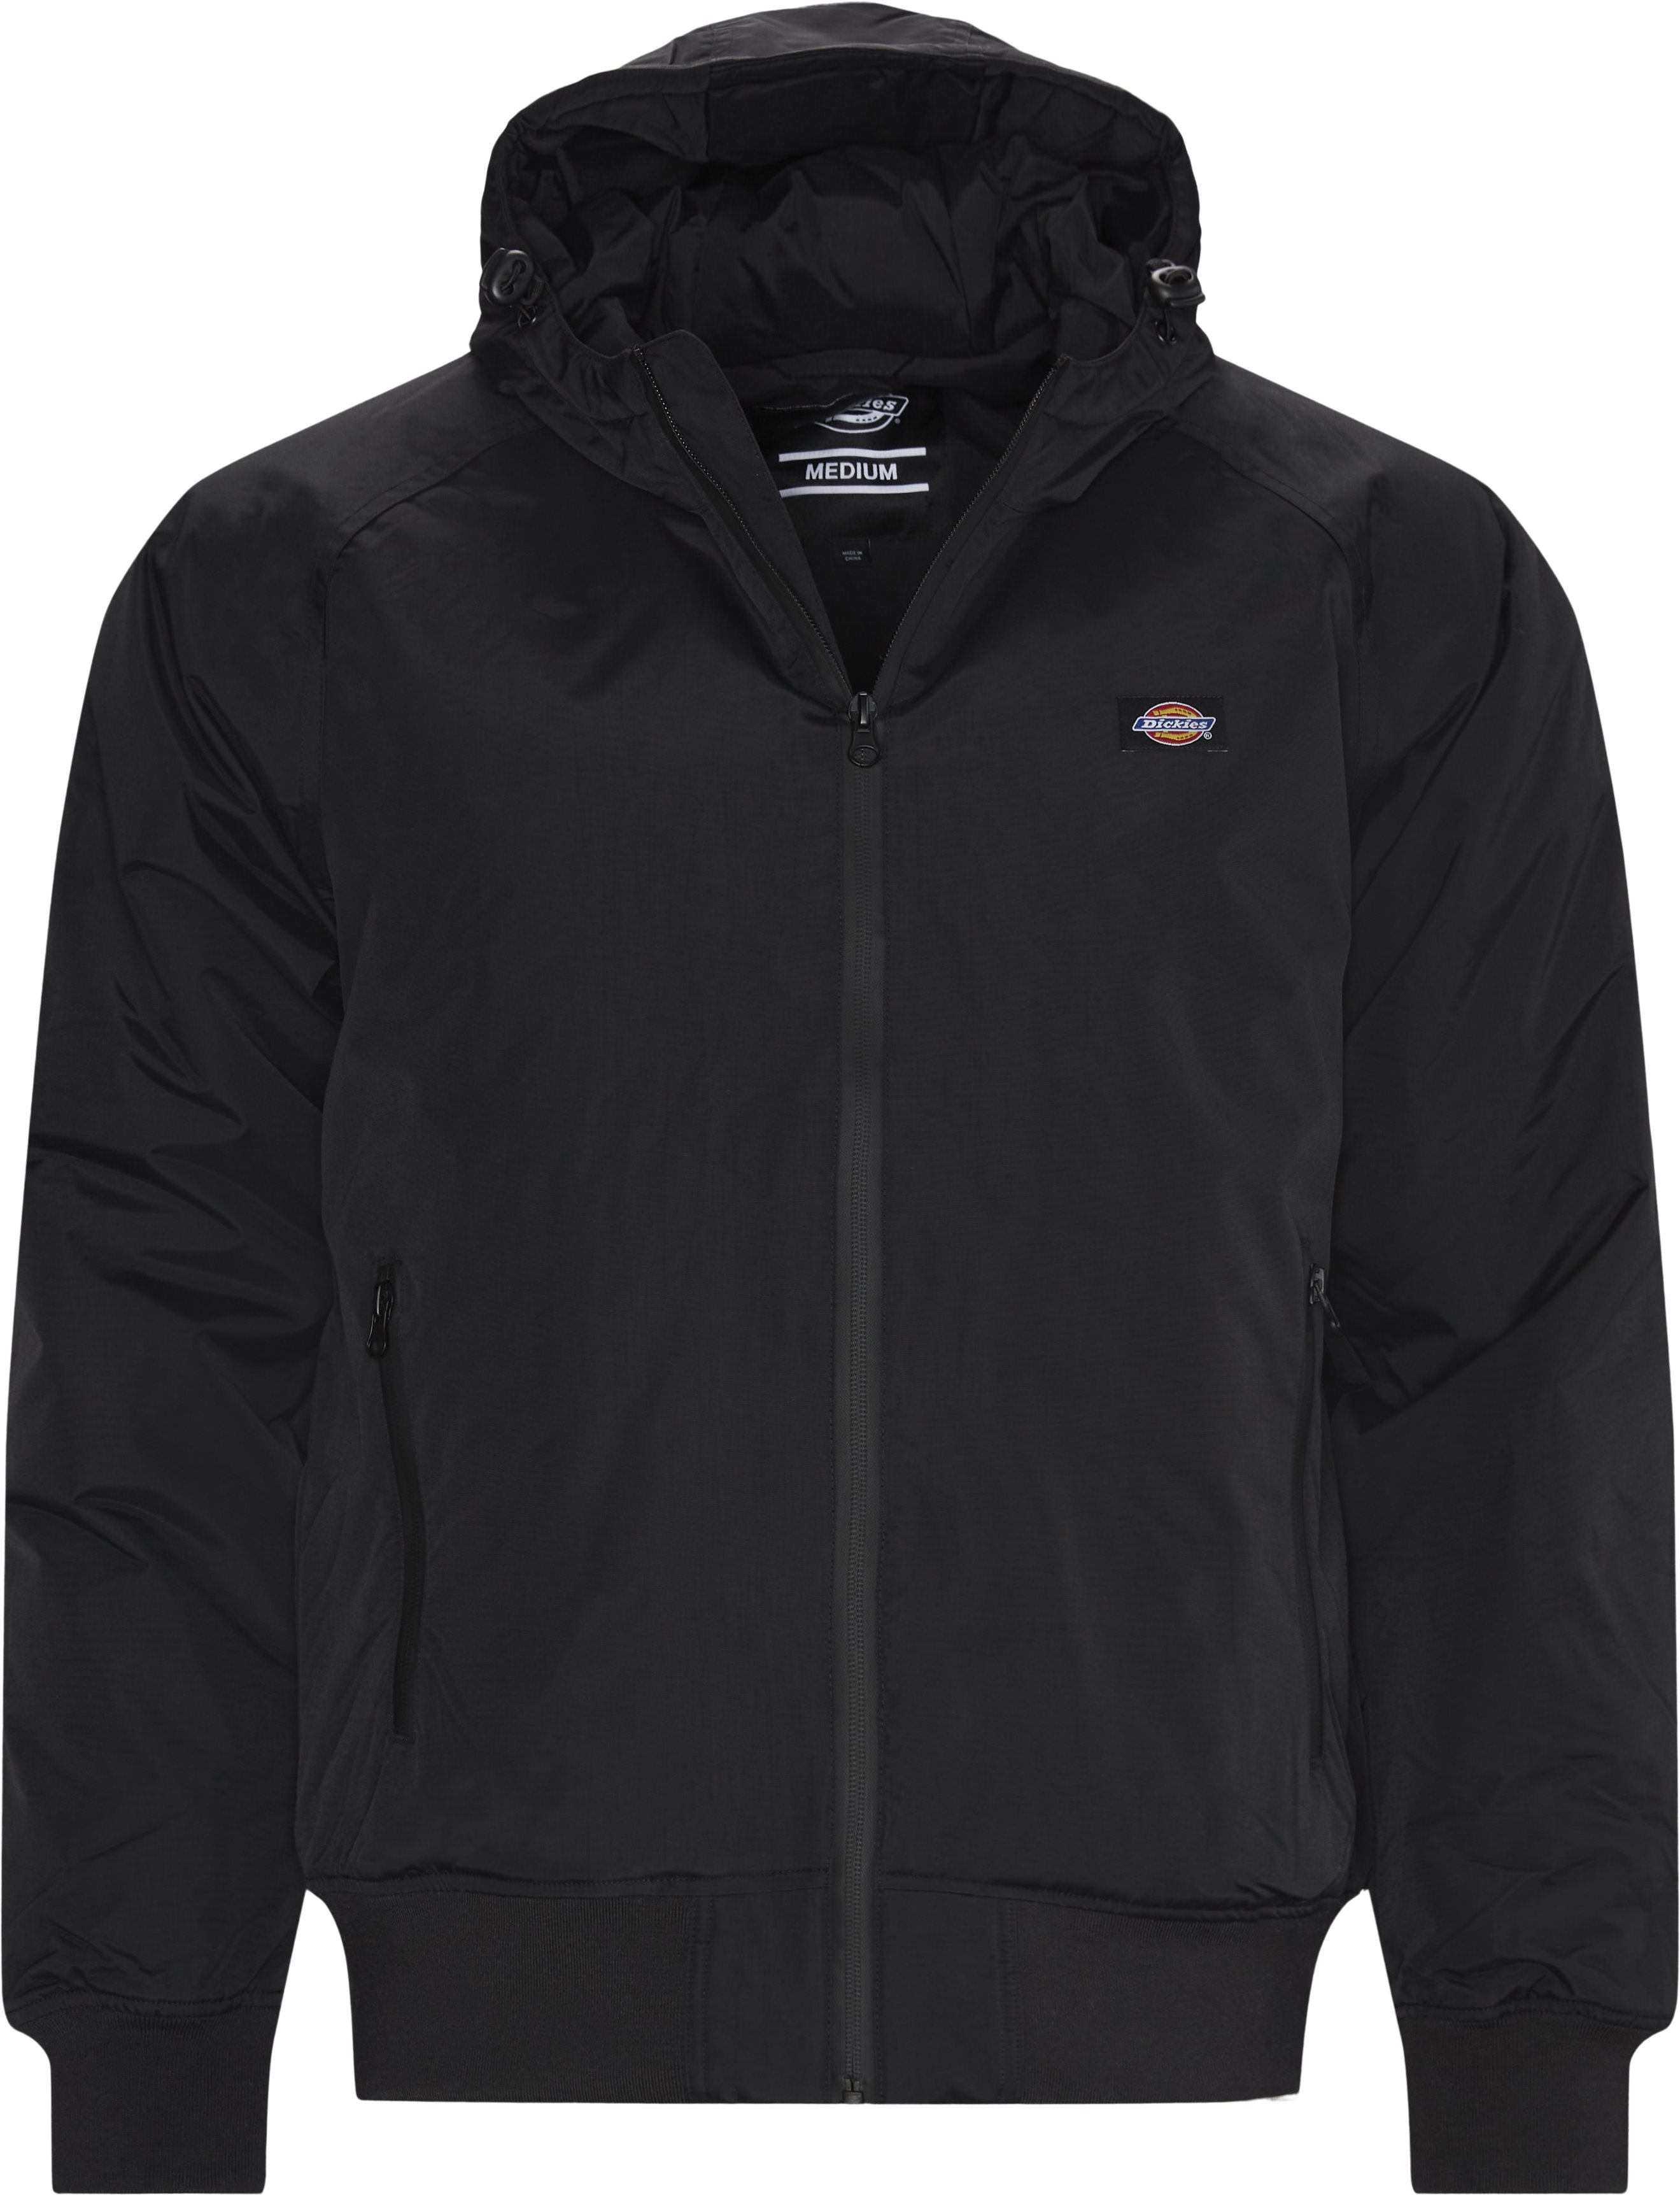 New Sarpy Jacket - Jakker - Regular - Sort